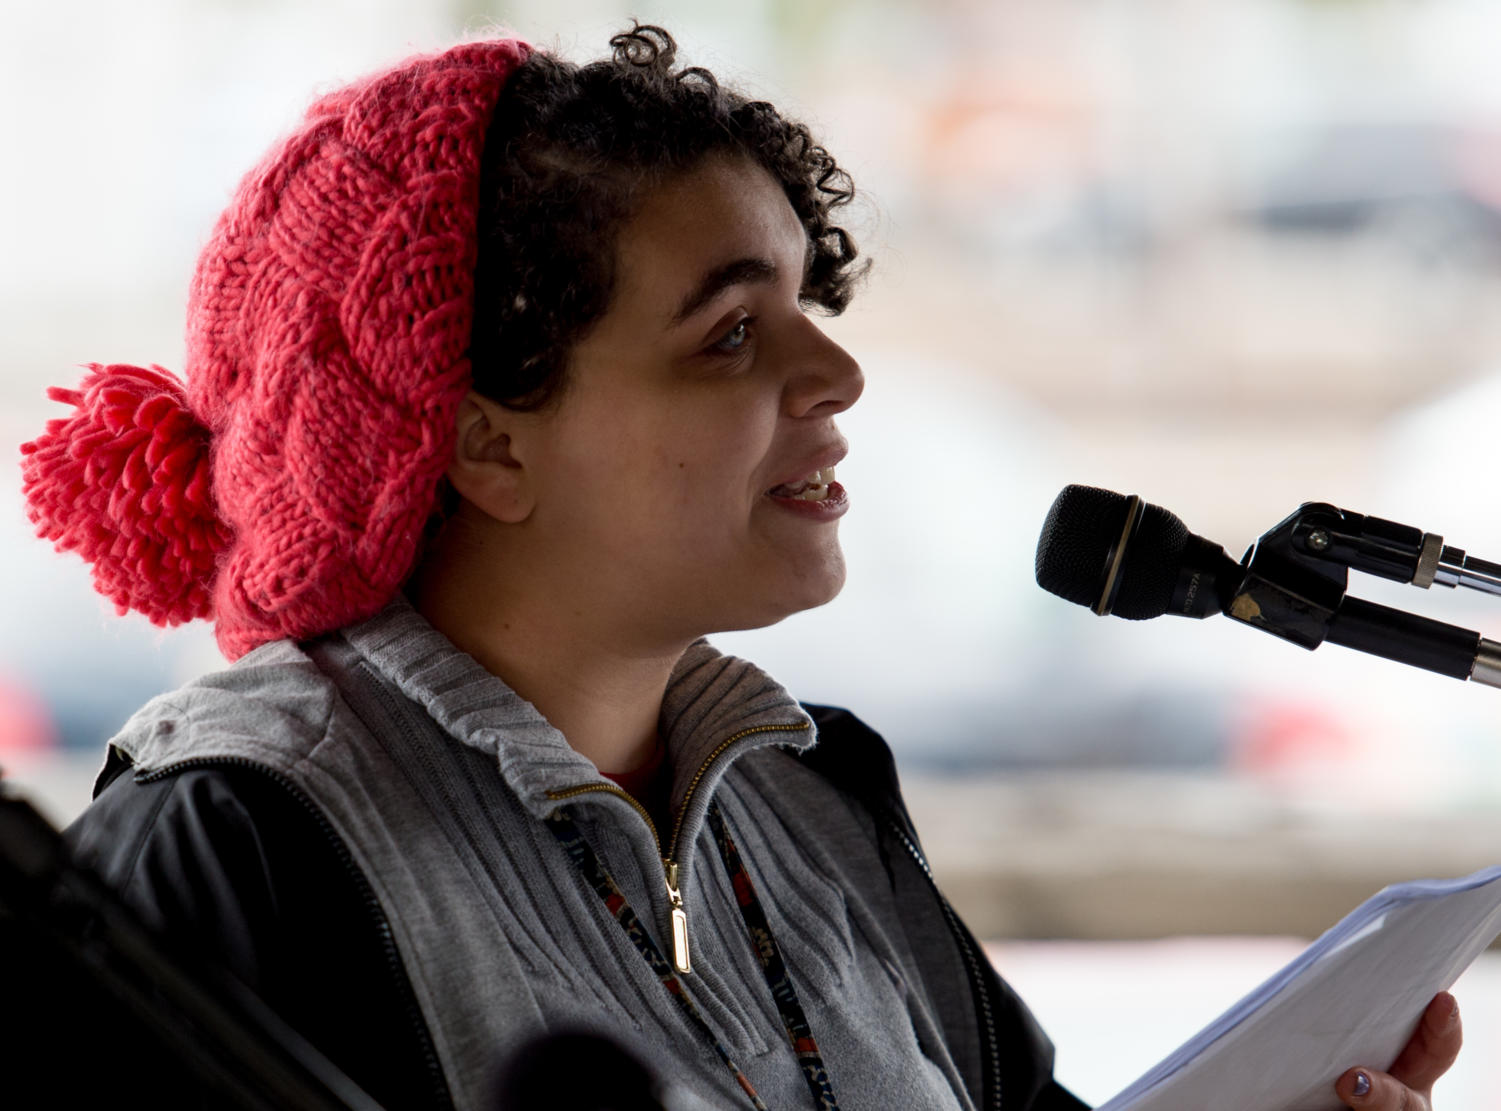 Alexis+Jones%2C+a+Carbondale+Community+High+School+student+and+event+organizer%2C+speaks+on+gun+legislation+Saturday%2C+March+24%2C+2018%2C+during+the+%22March+for+Our+Lives%22+demonstration+in+downtown+Carbondale.++%28Brian+Munoz+%7C+%40BrianMMunoz%29